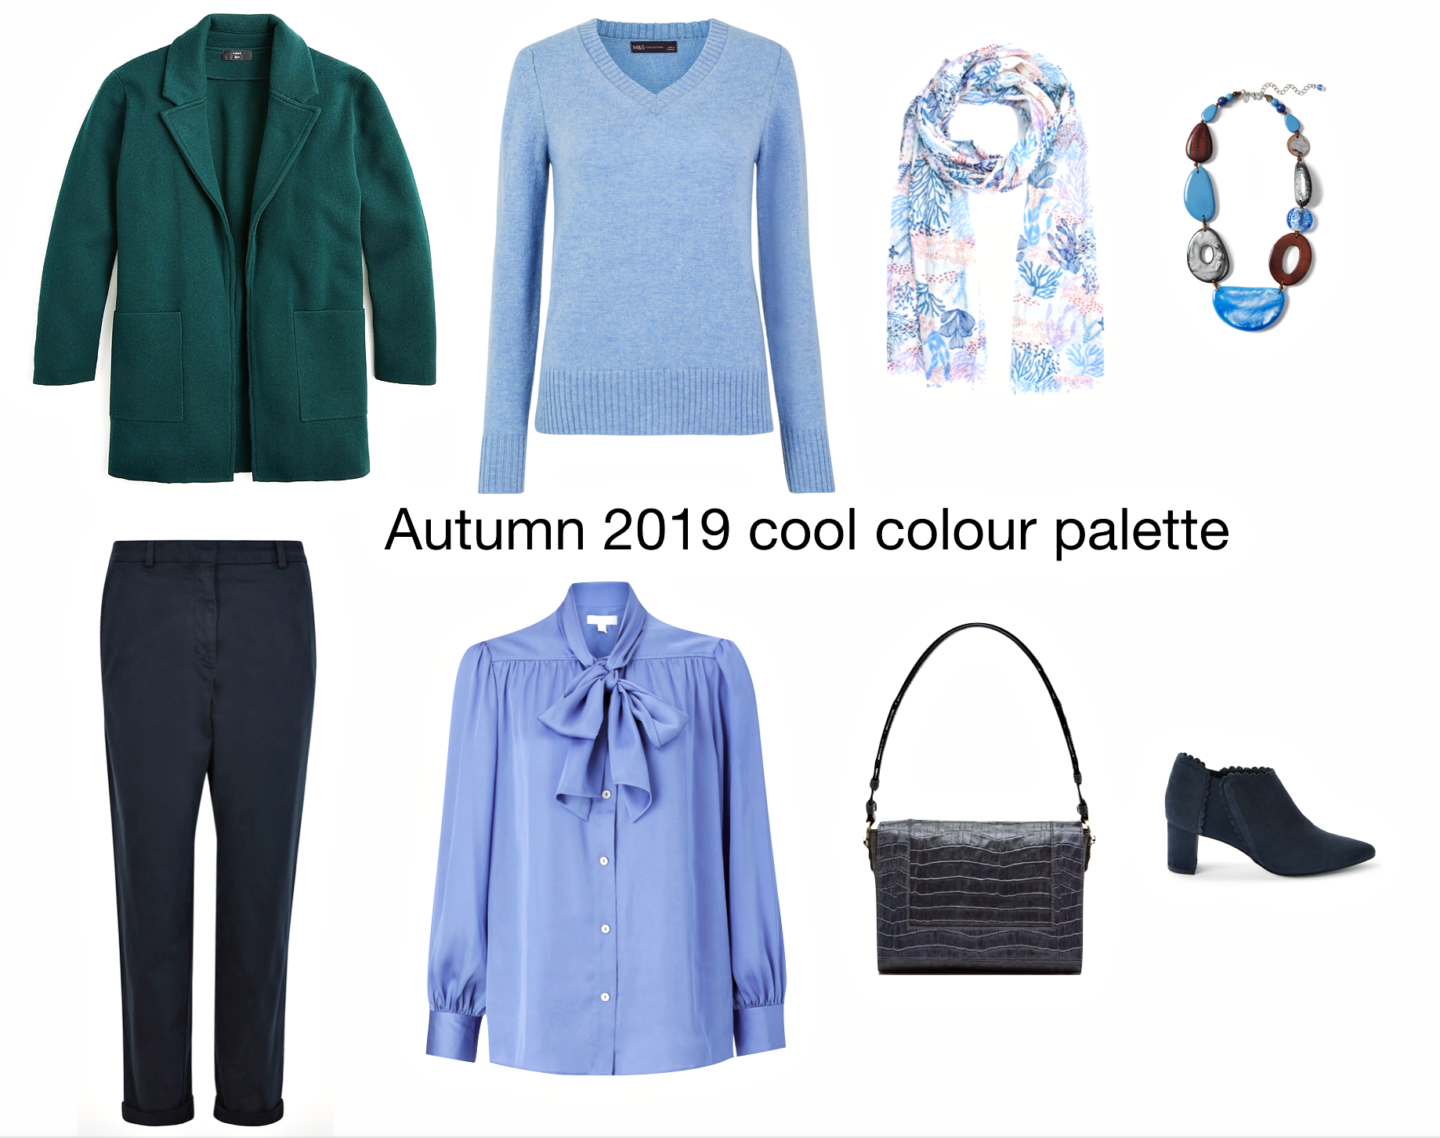 Autumn 2019 cool colour palette